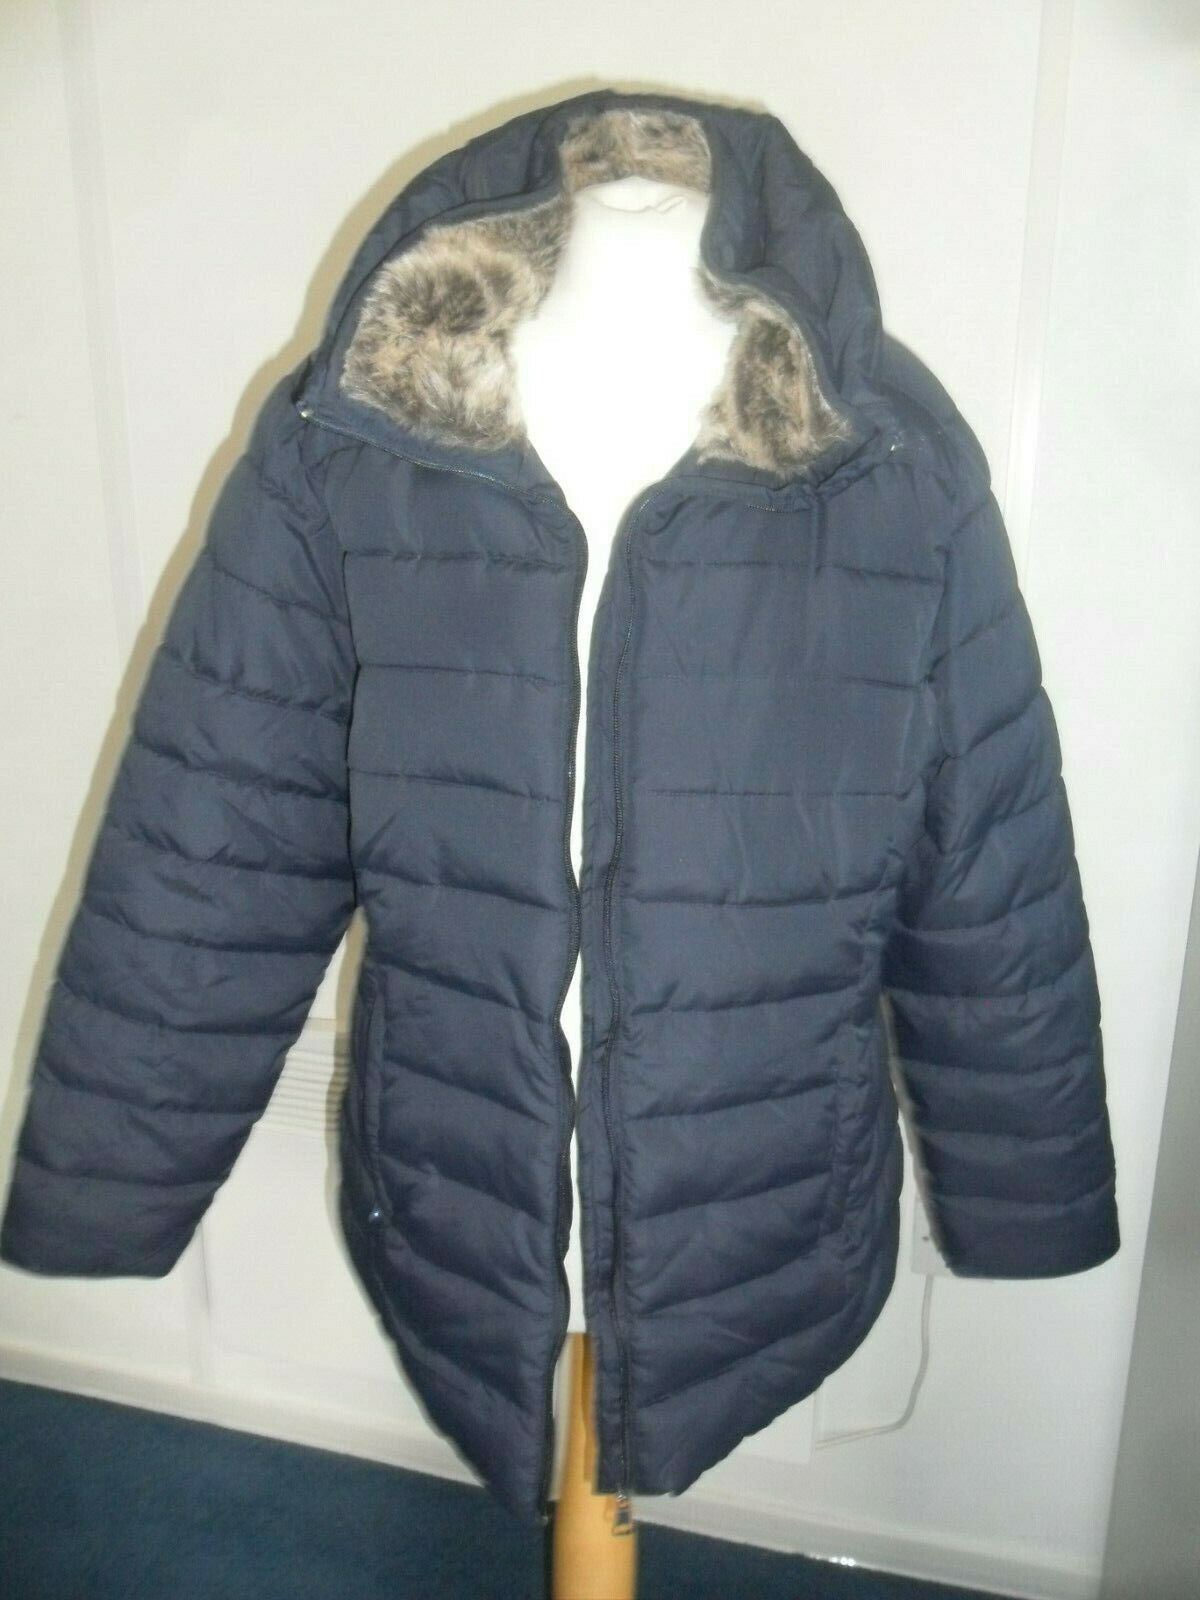 Ladies Long Raincoat Quilted Blue with Faux Fur BNWT Sizes 16 & 18 by Autonomy